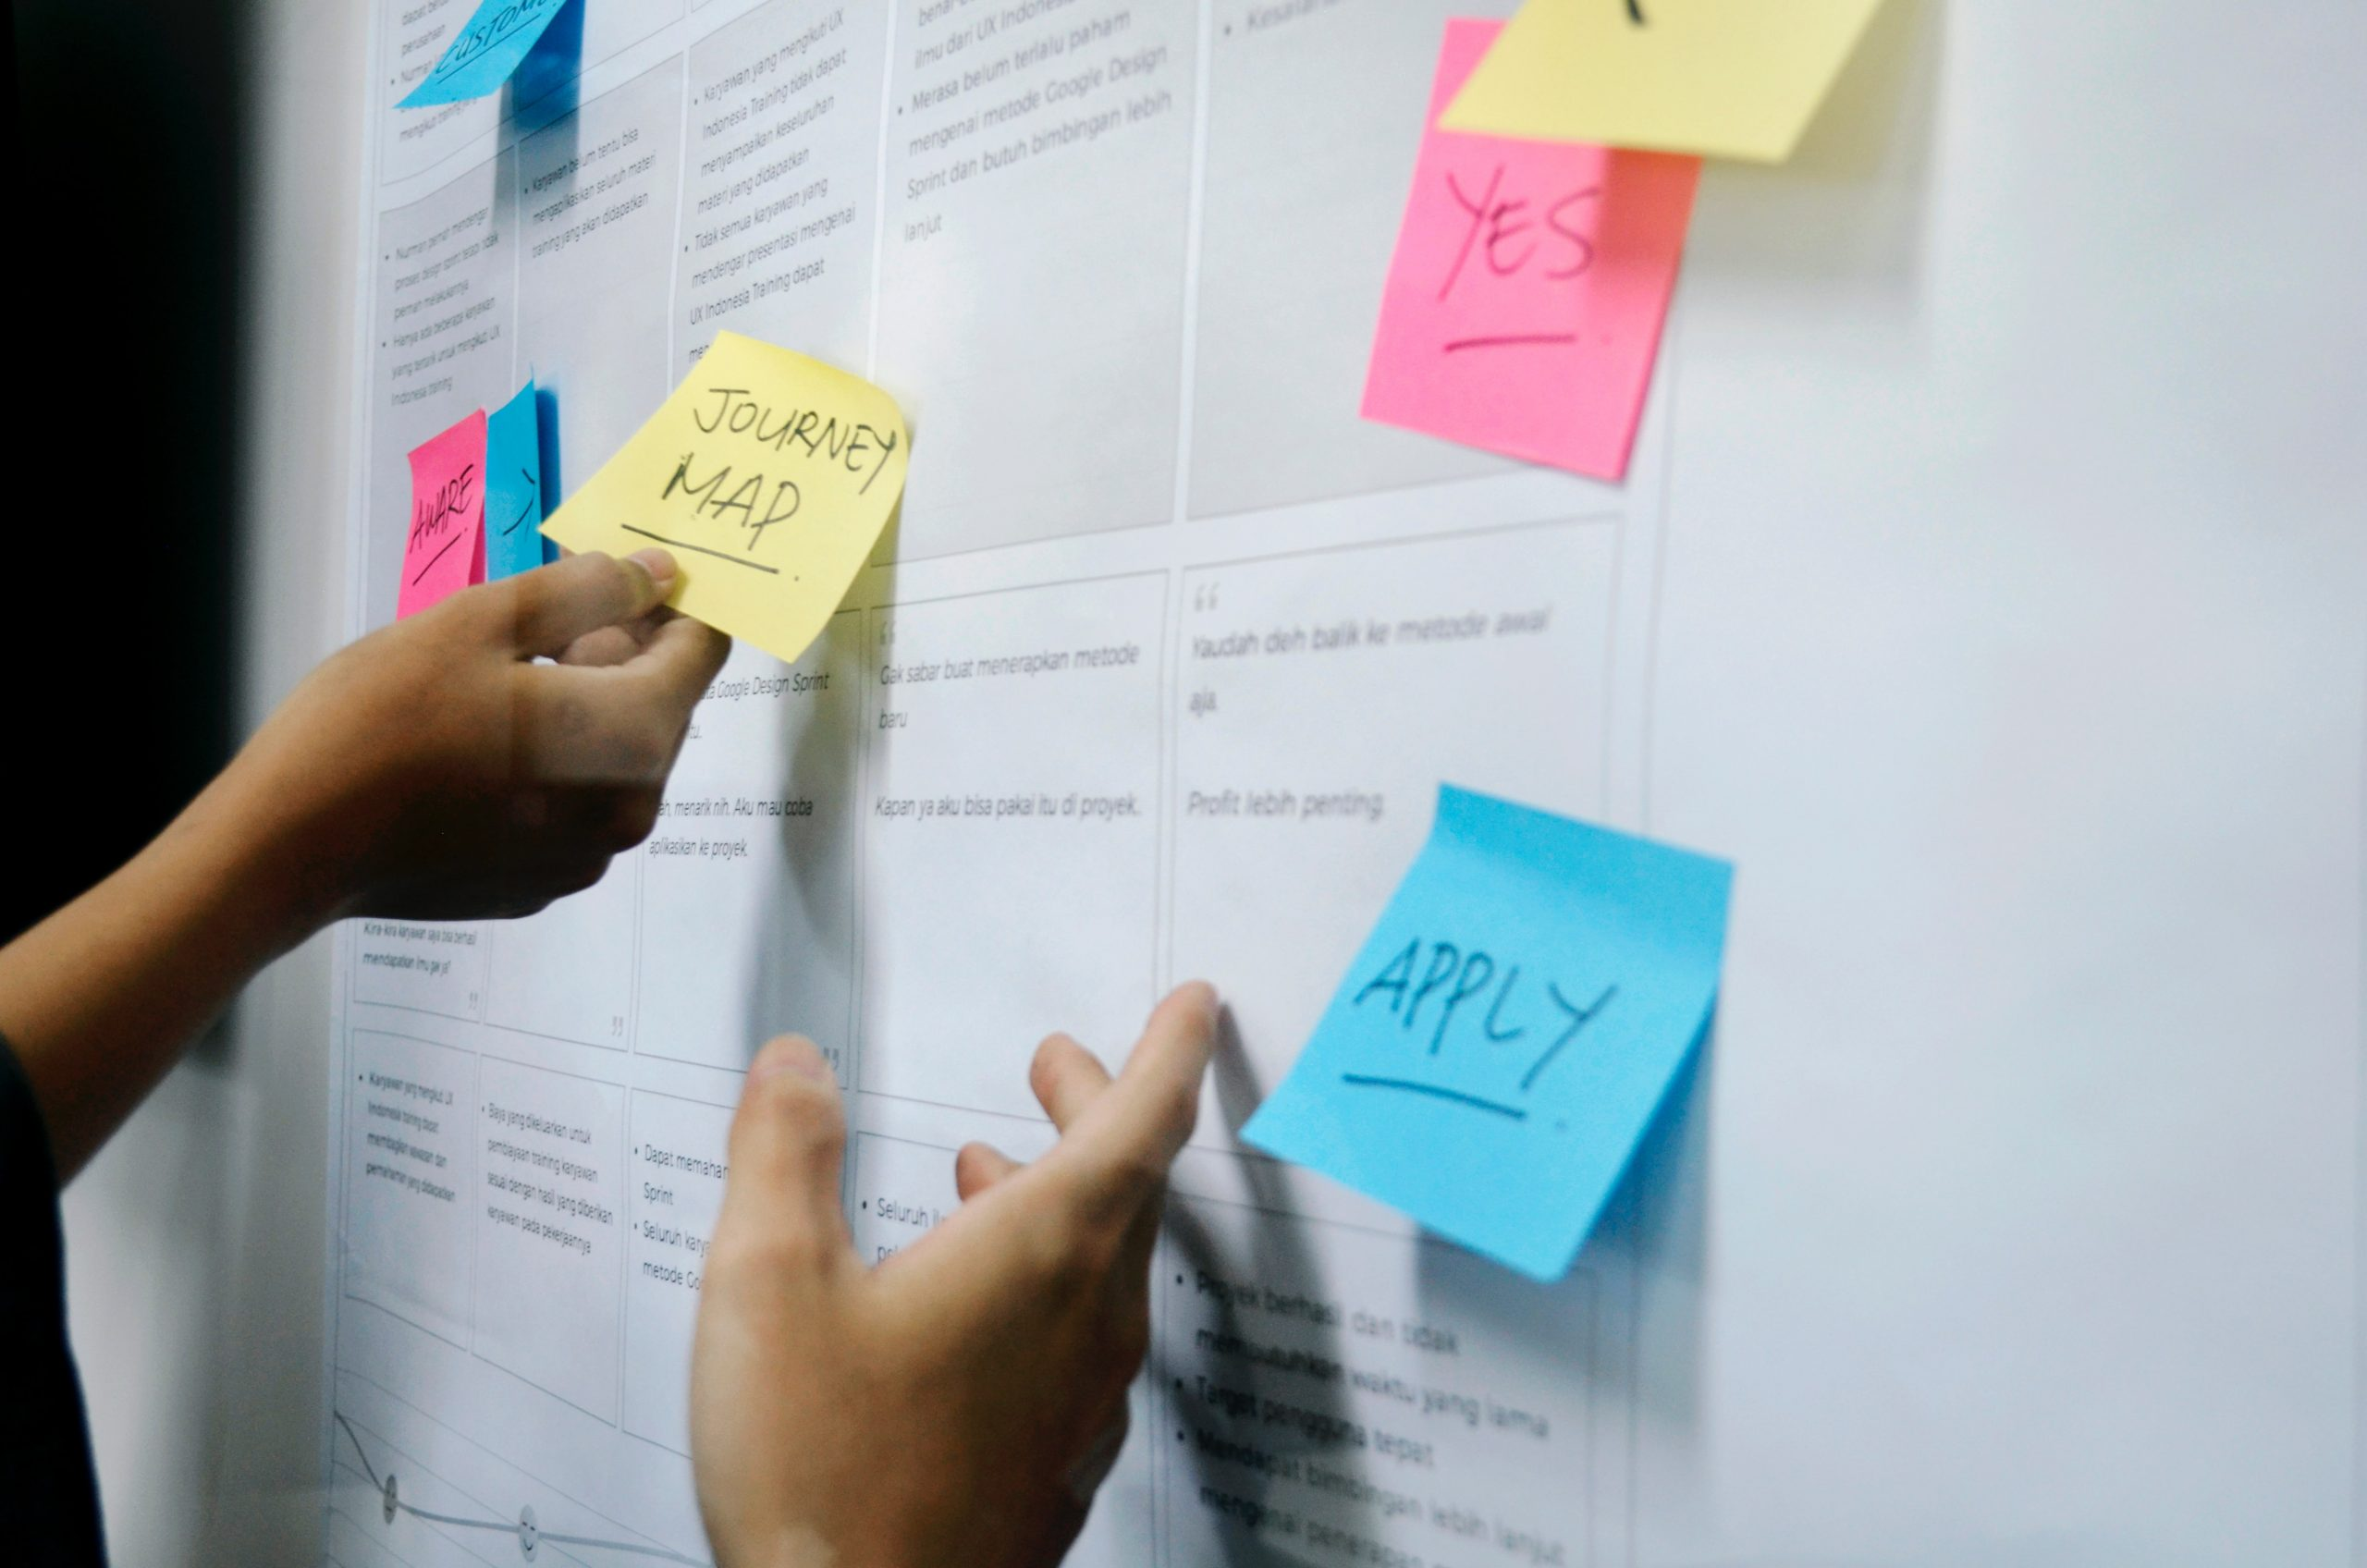 planning with sticky notes on a whiteboard